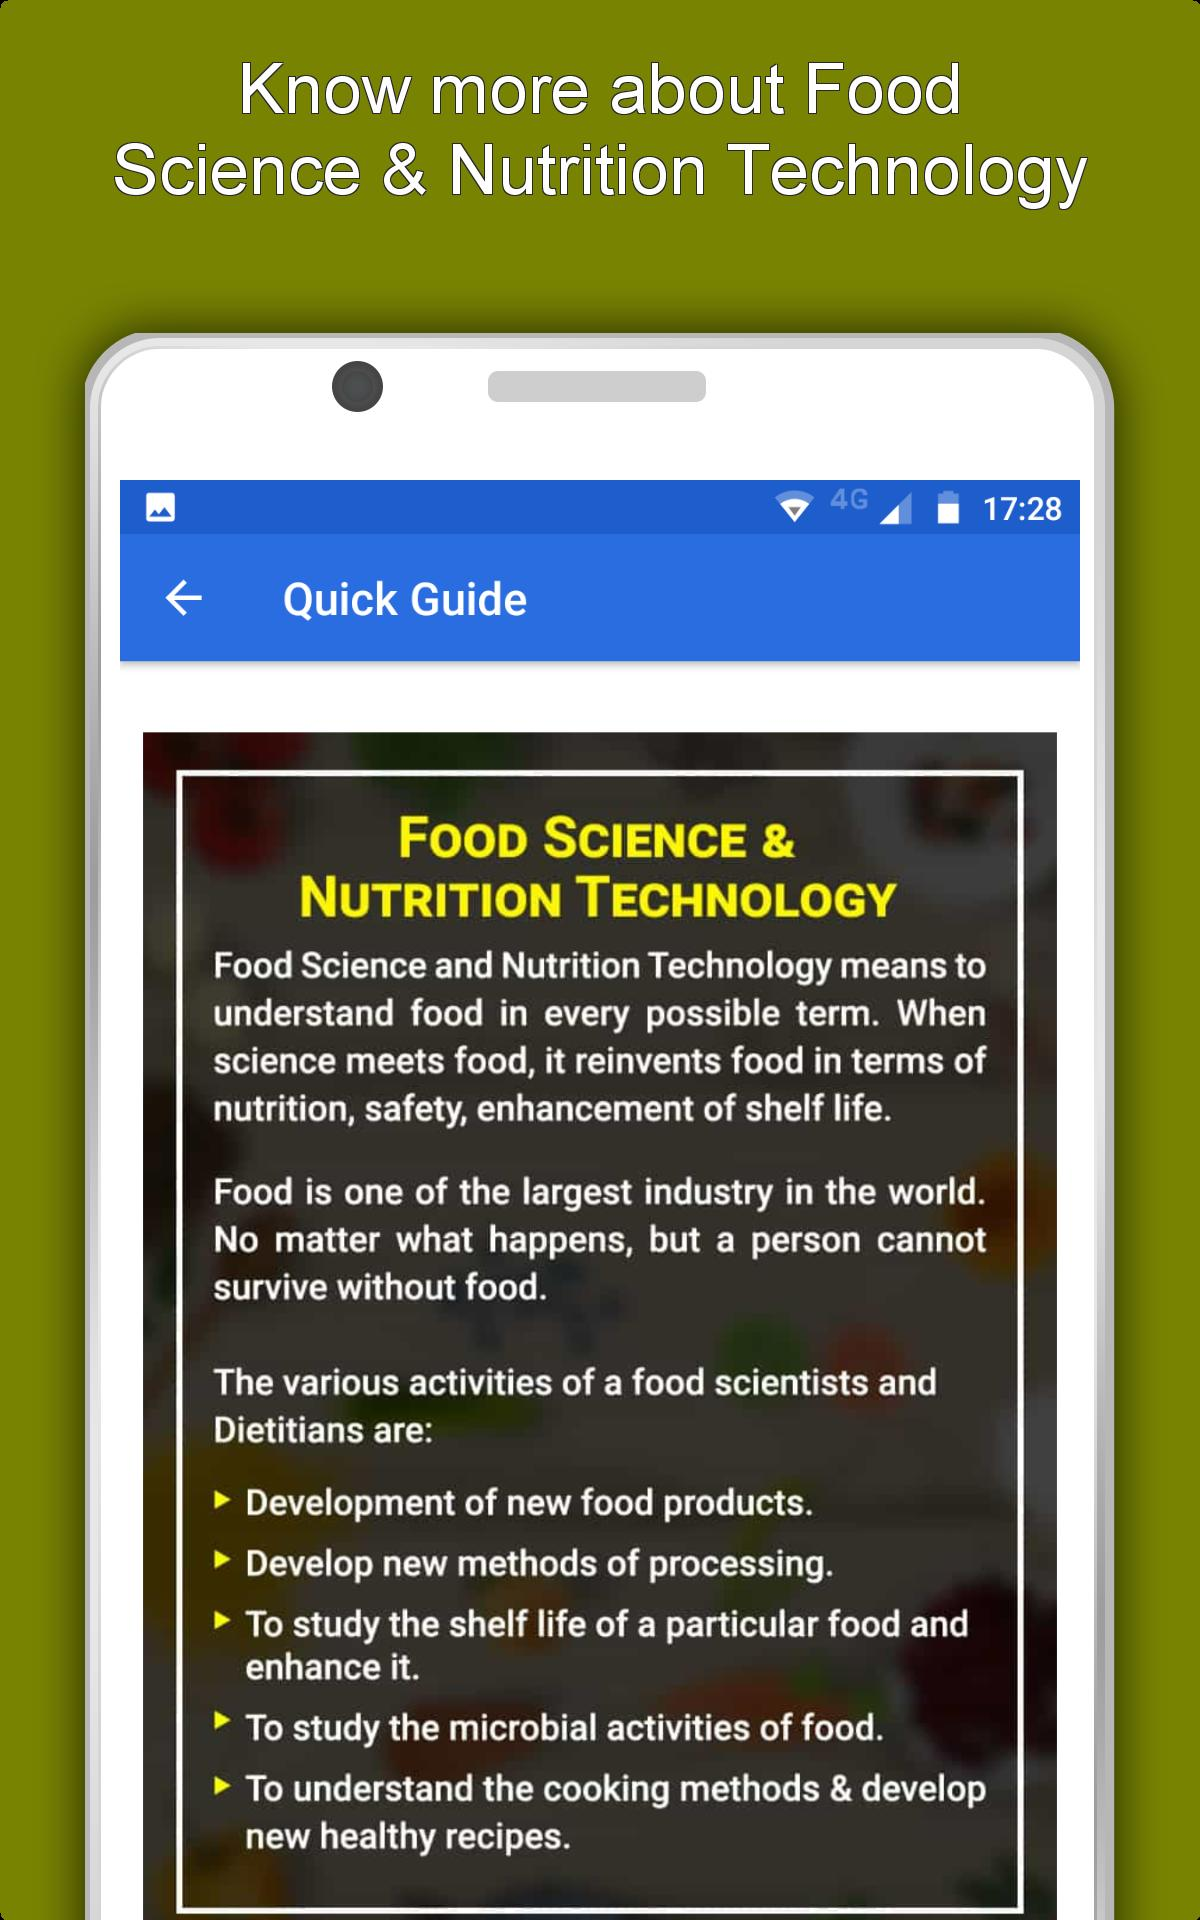 Food Science & Nutrition Technology - Food Tech for Android - APK